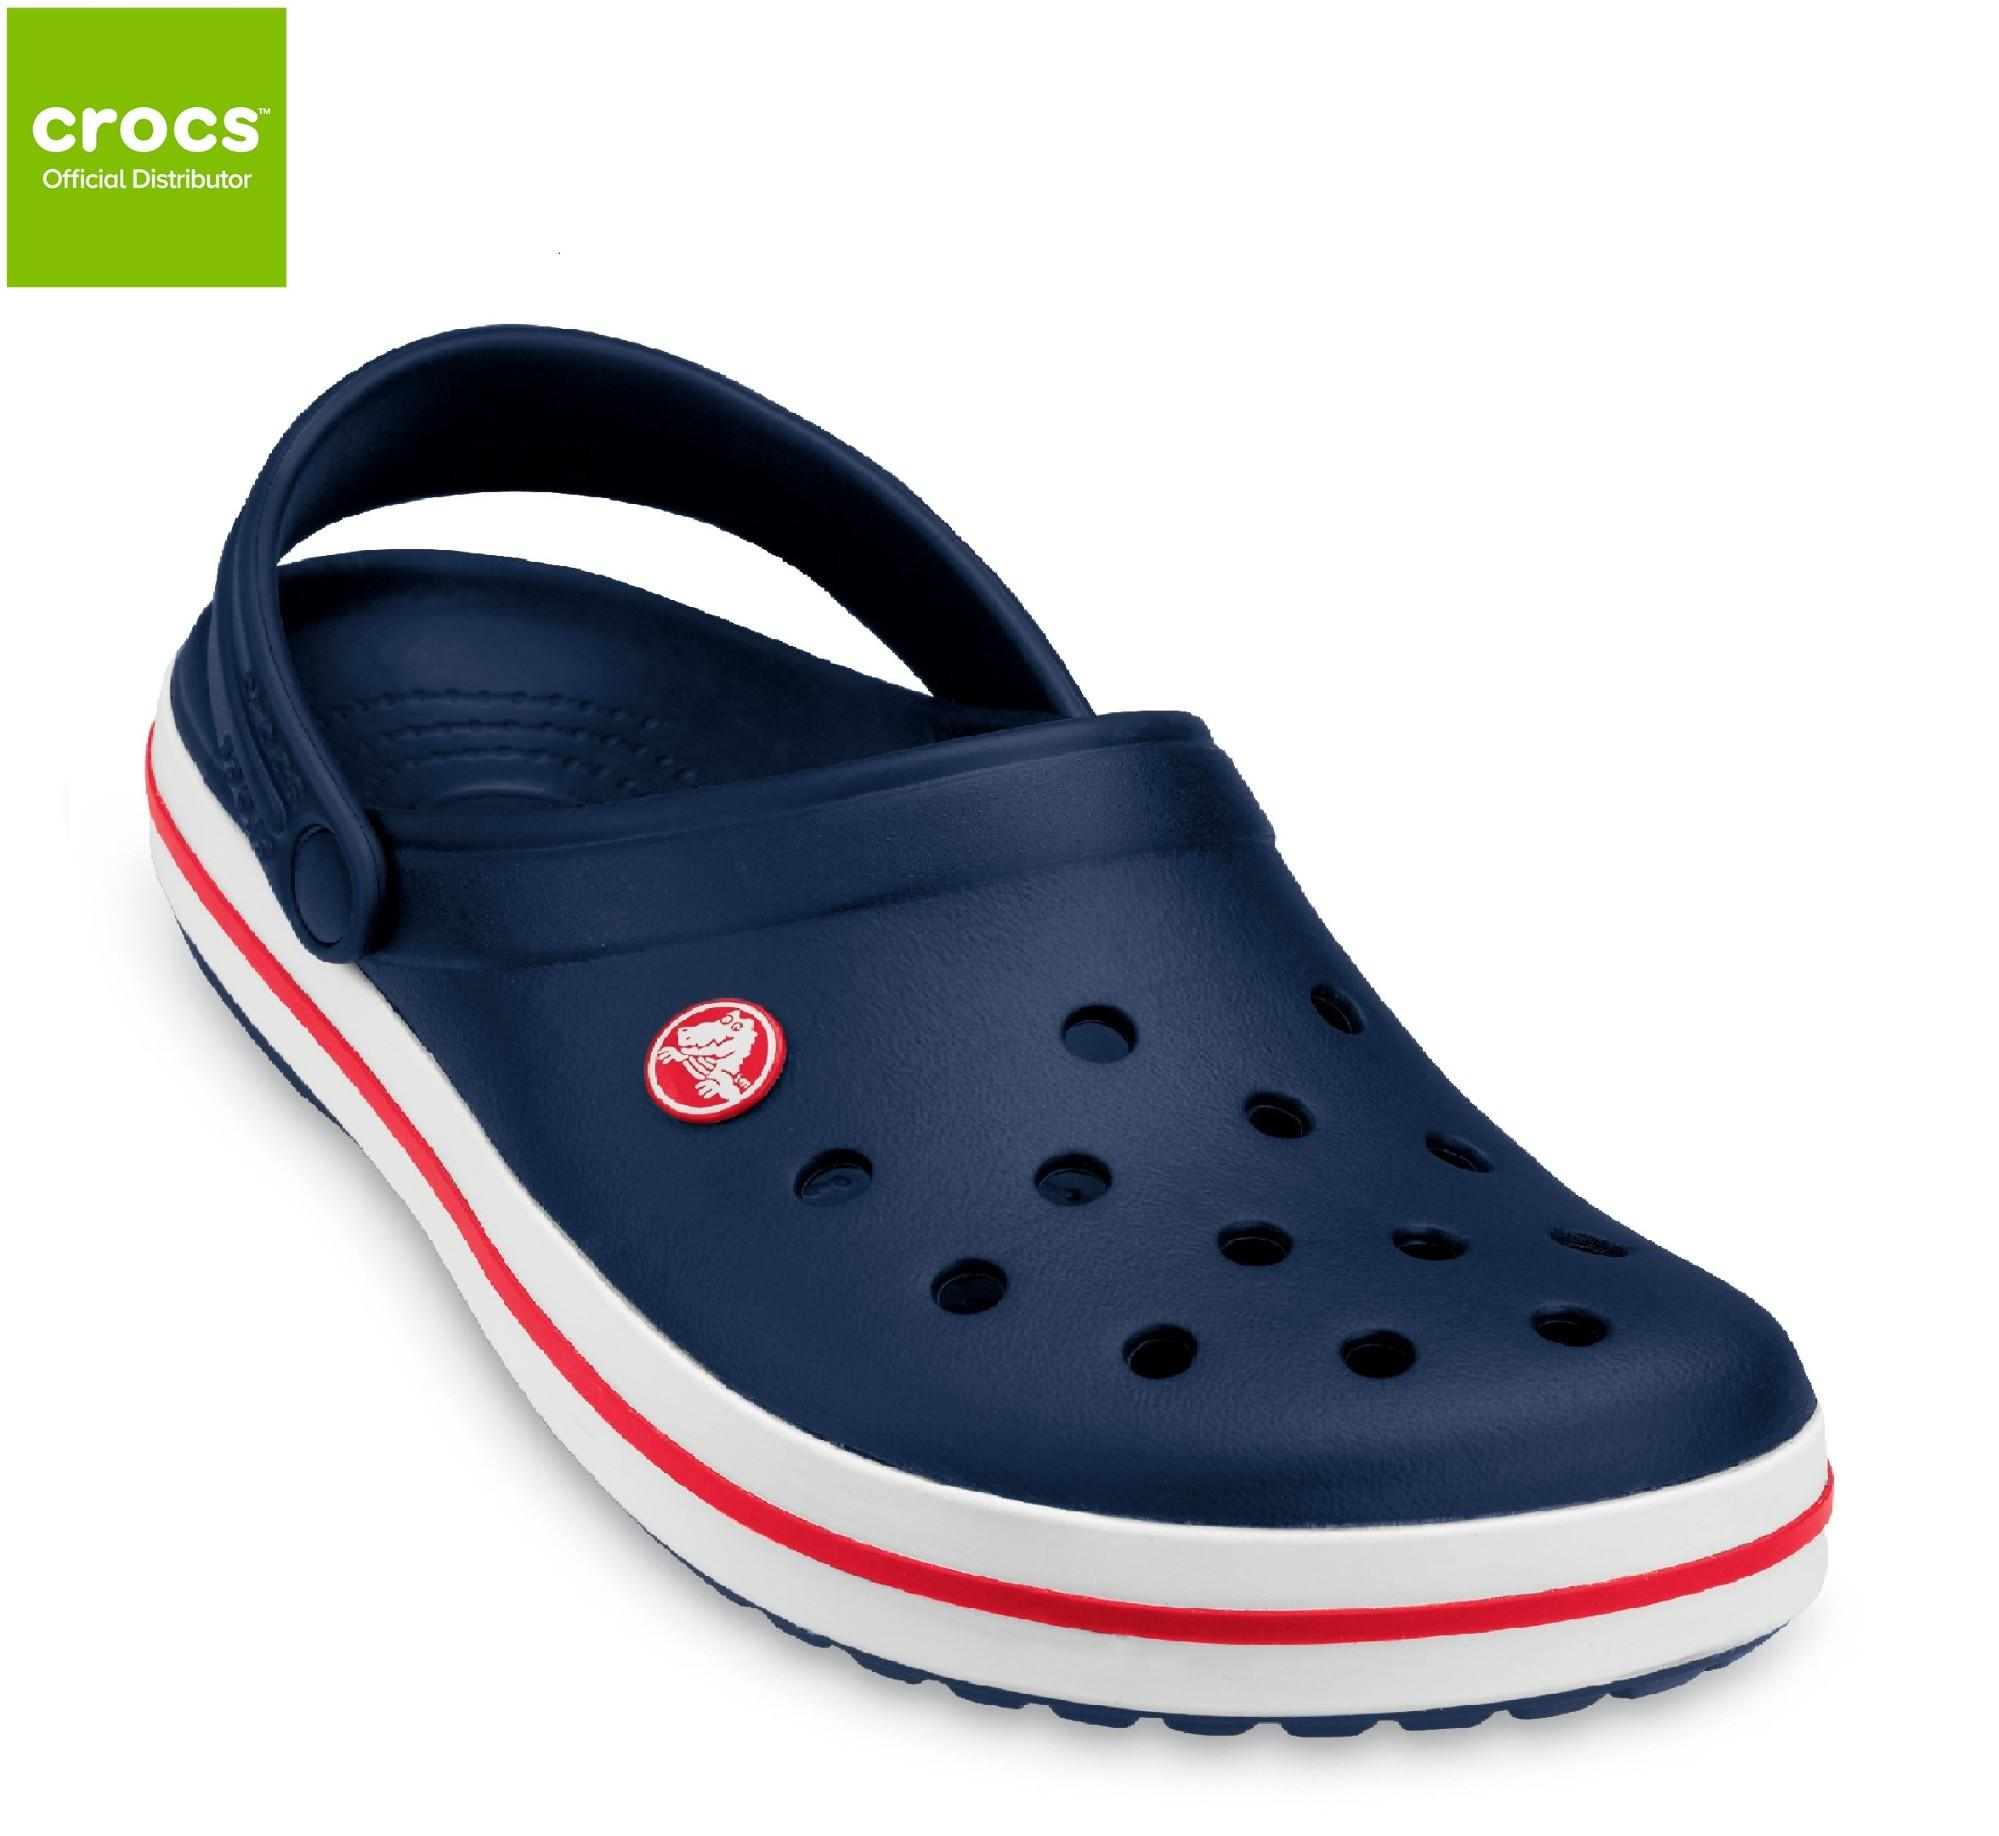 02118331d Crocs Philippines  Crocs price list - Crocs Flats